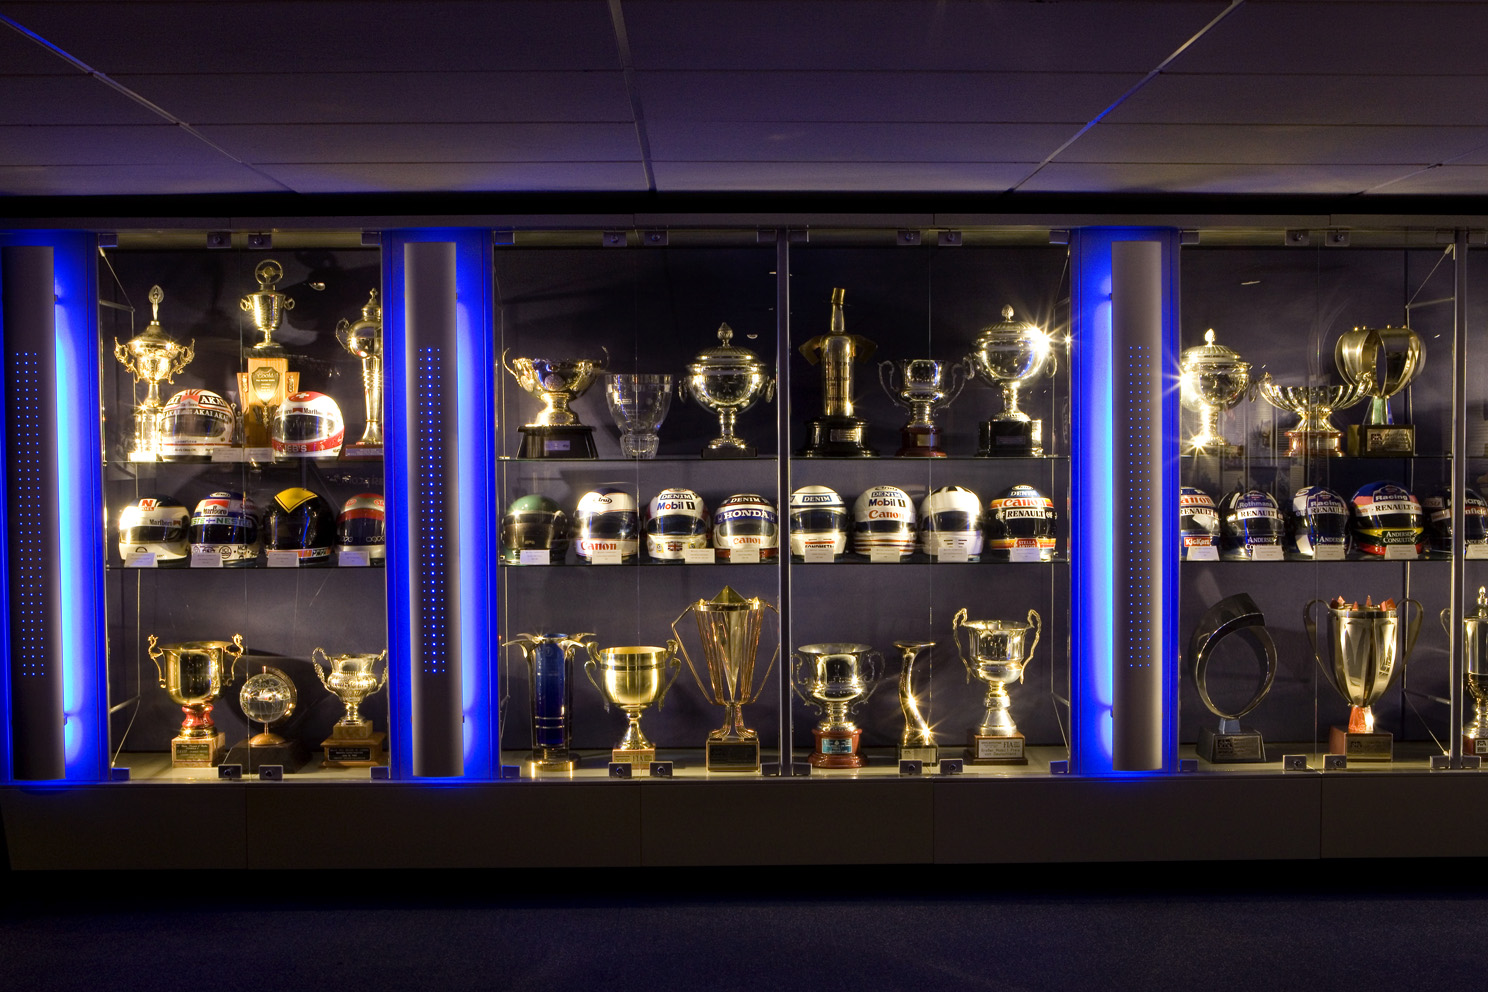 Williams F1 museum